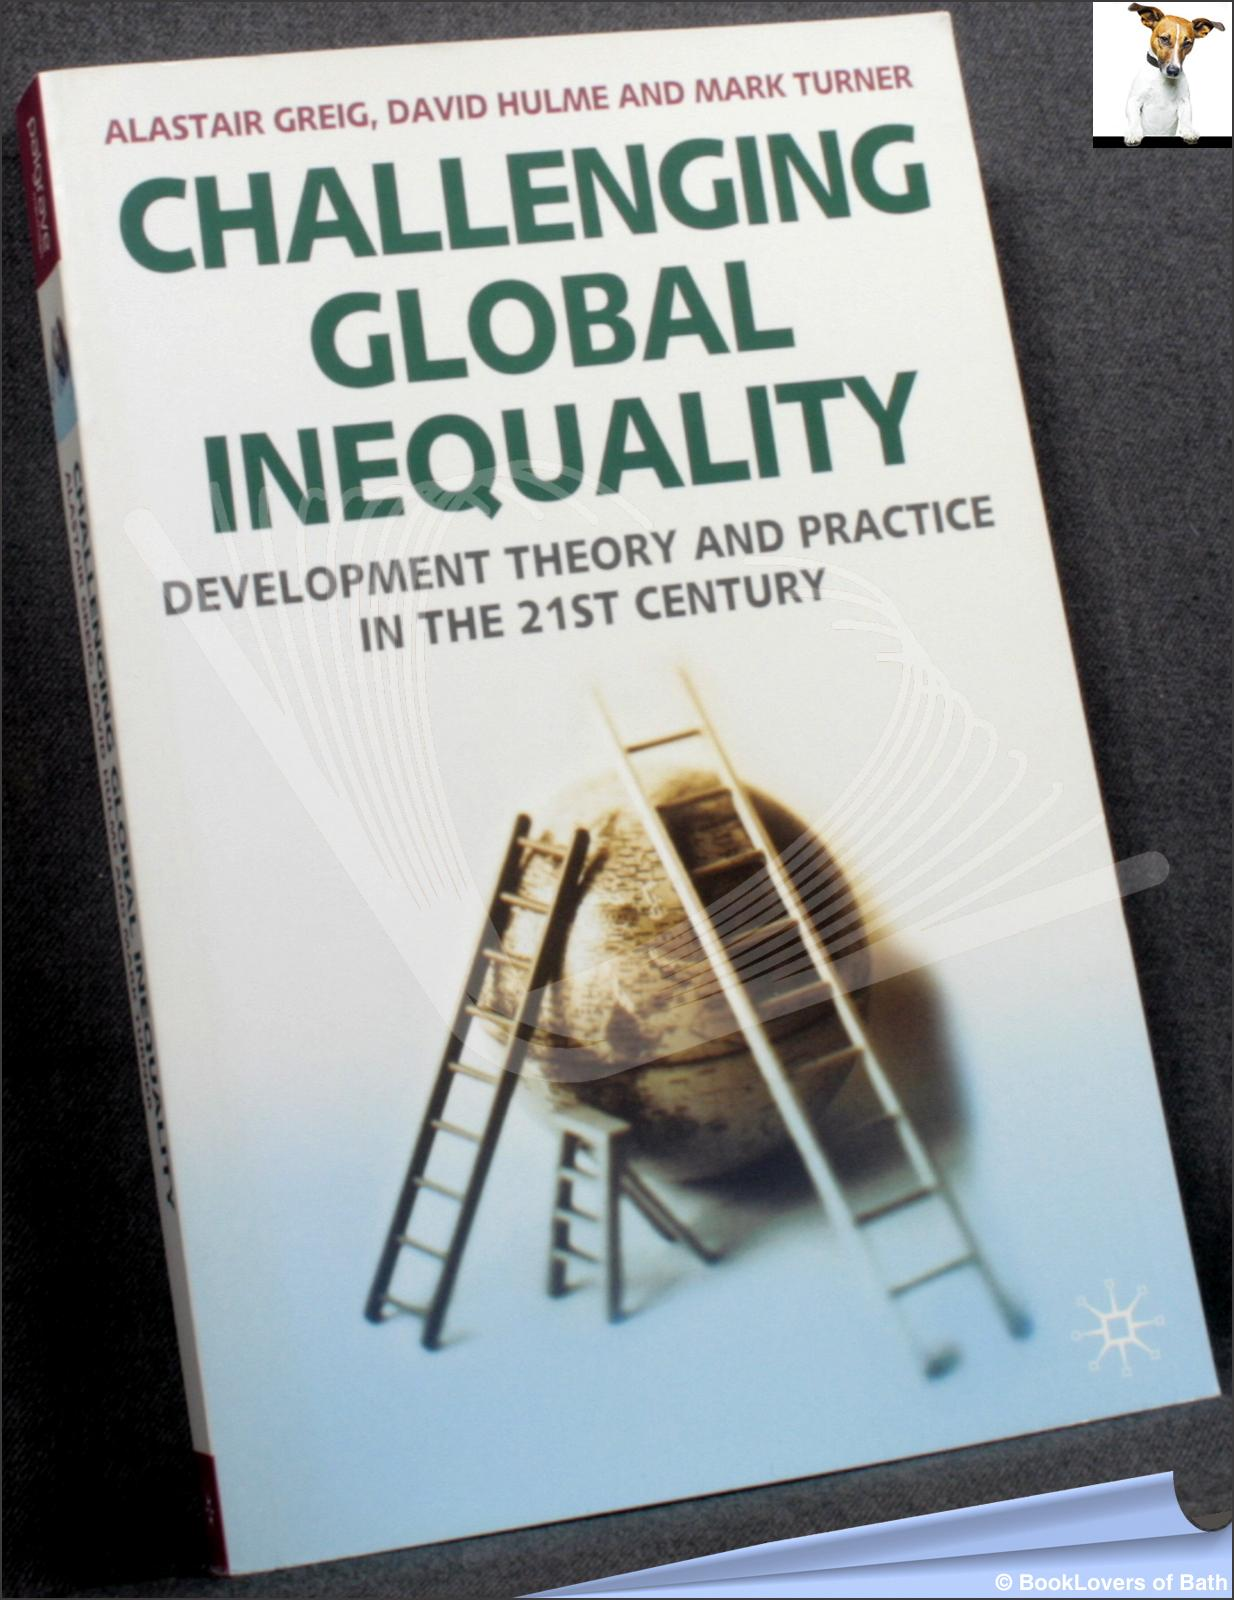 Challenging Global Inequality: Development Theory and Practice in the 21st Century - Alastair Greig, David Hulme & Mark Turner